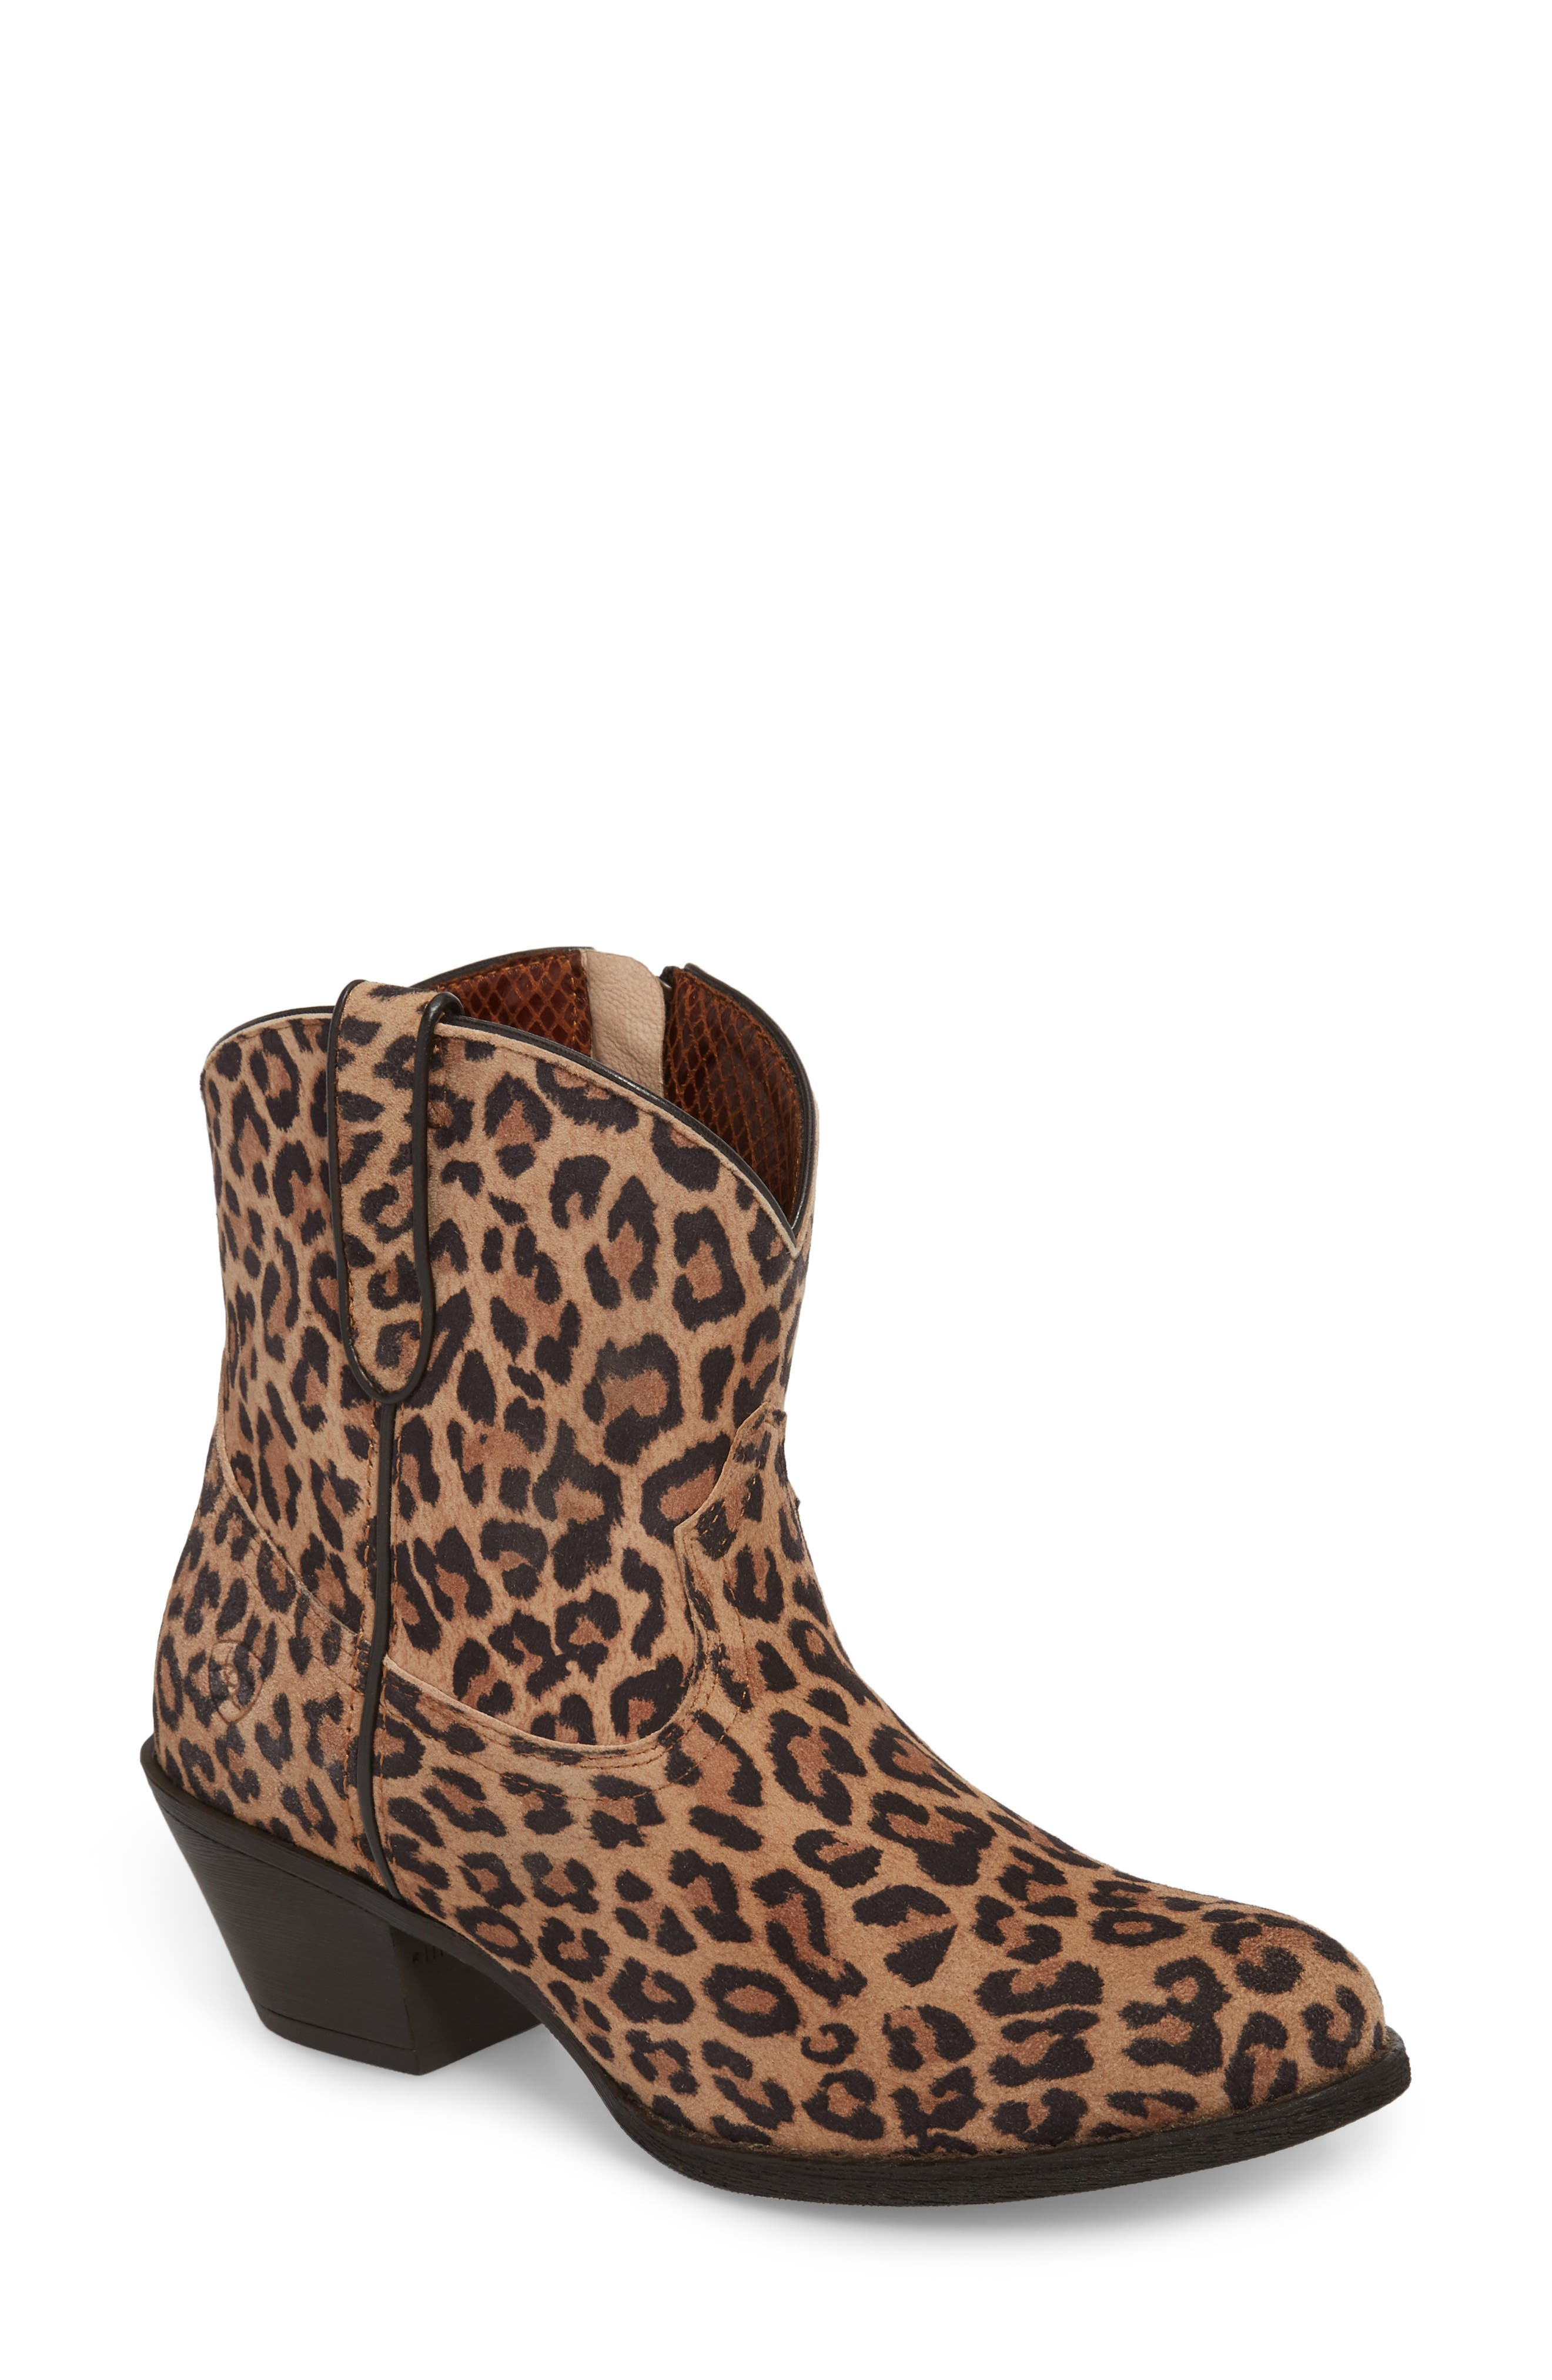 Darlin Short Western Boot,                         Main,                         color, LEOPARD PRINT LEATHER